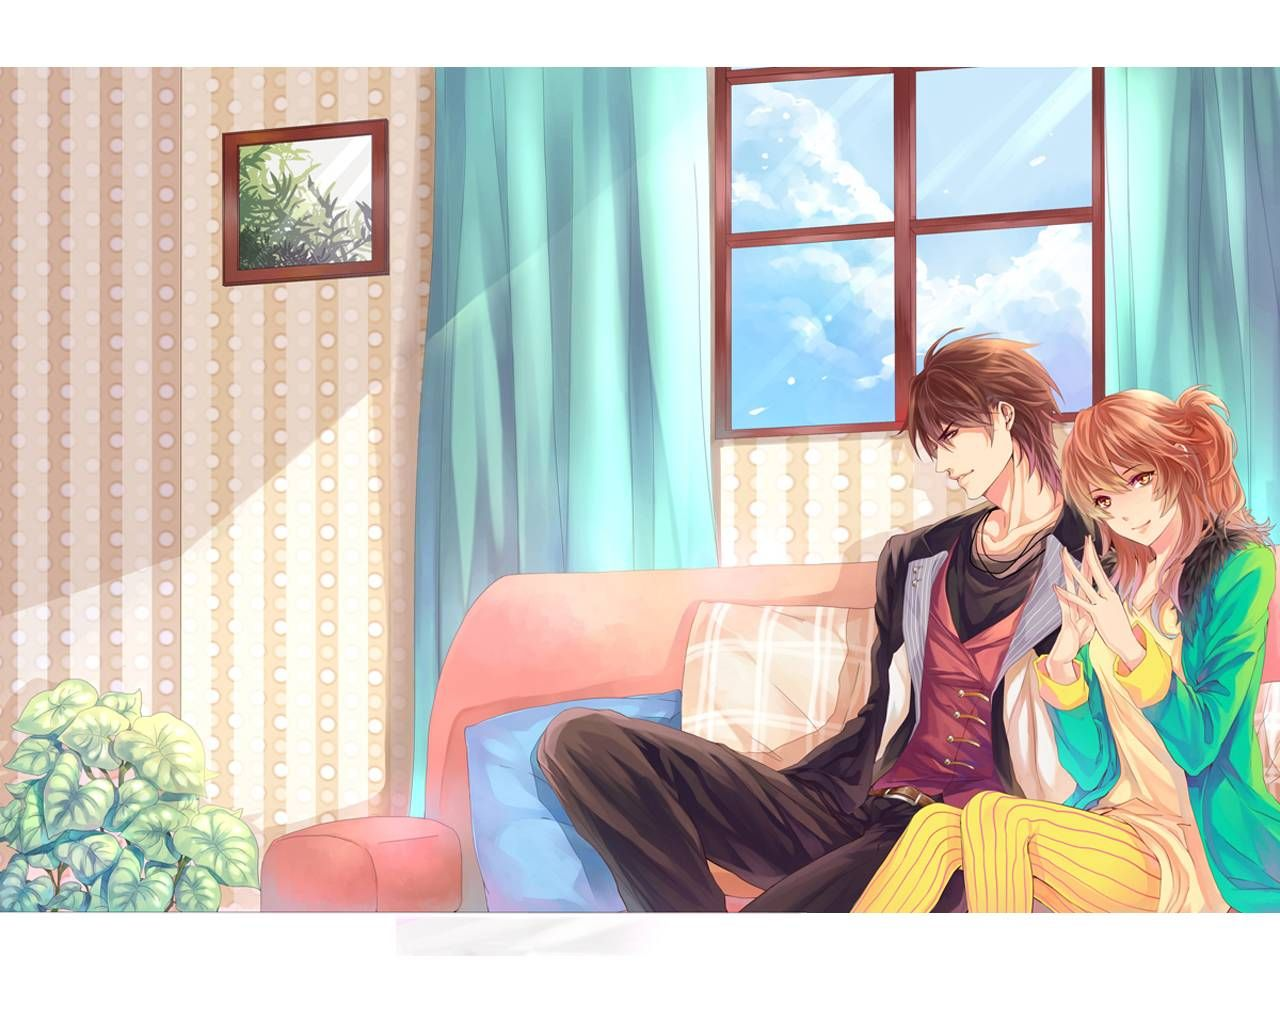 Beautiful Anime Couple Wallpaper HD Images  One HD Wallpaper 1280×951 Anime Couple Wallpaper (52 Wallpapers) | Adorable Wallpapers